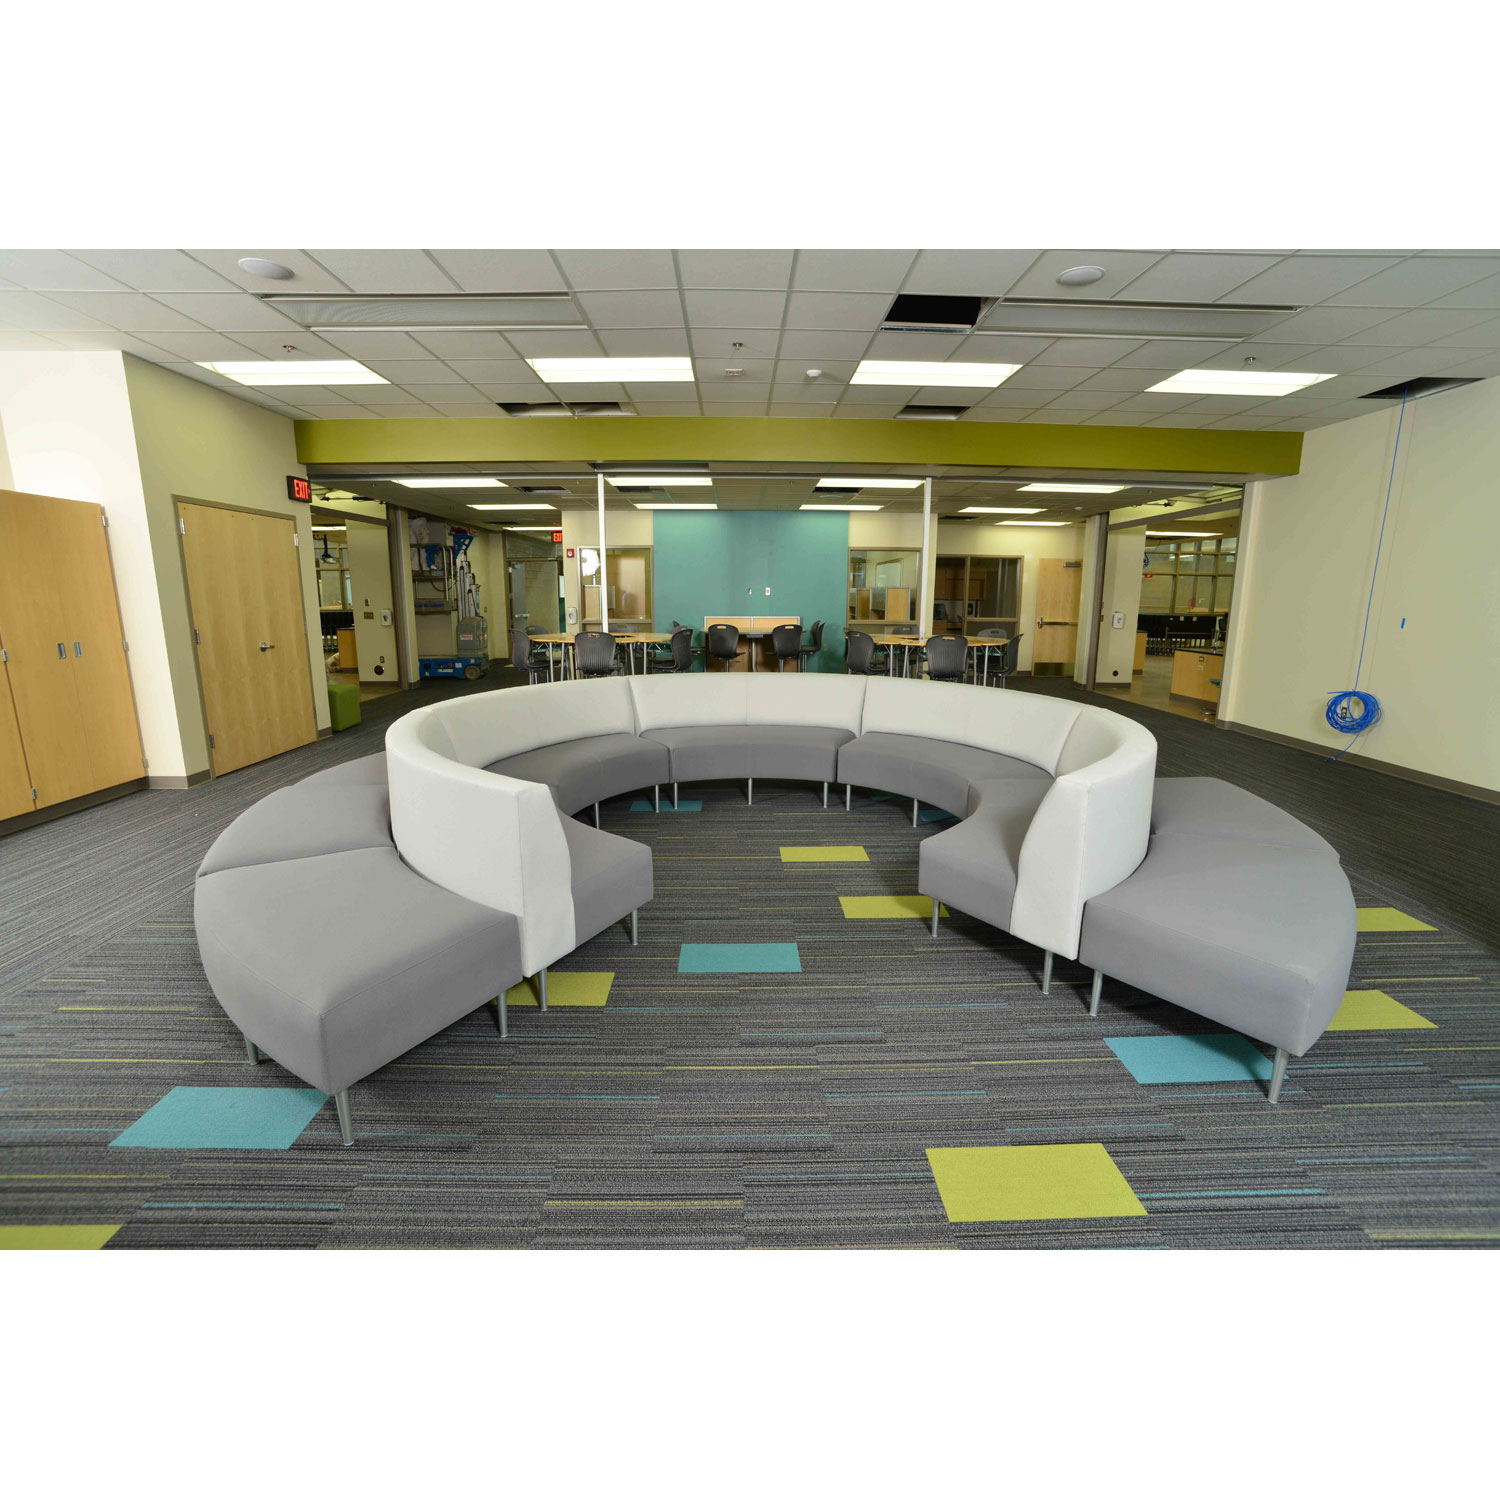 Installation of HPFi education products at Holton